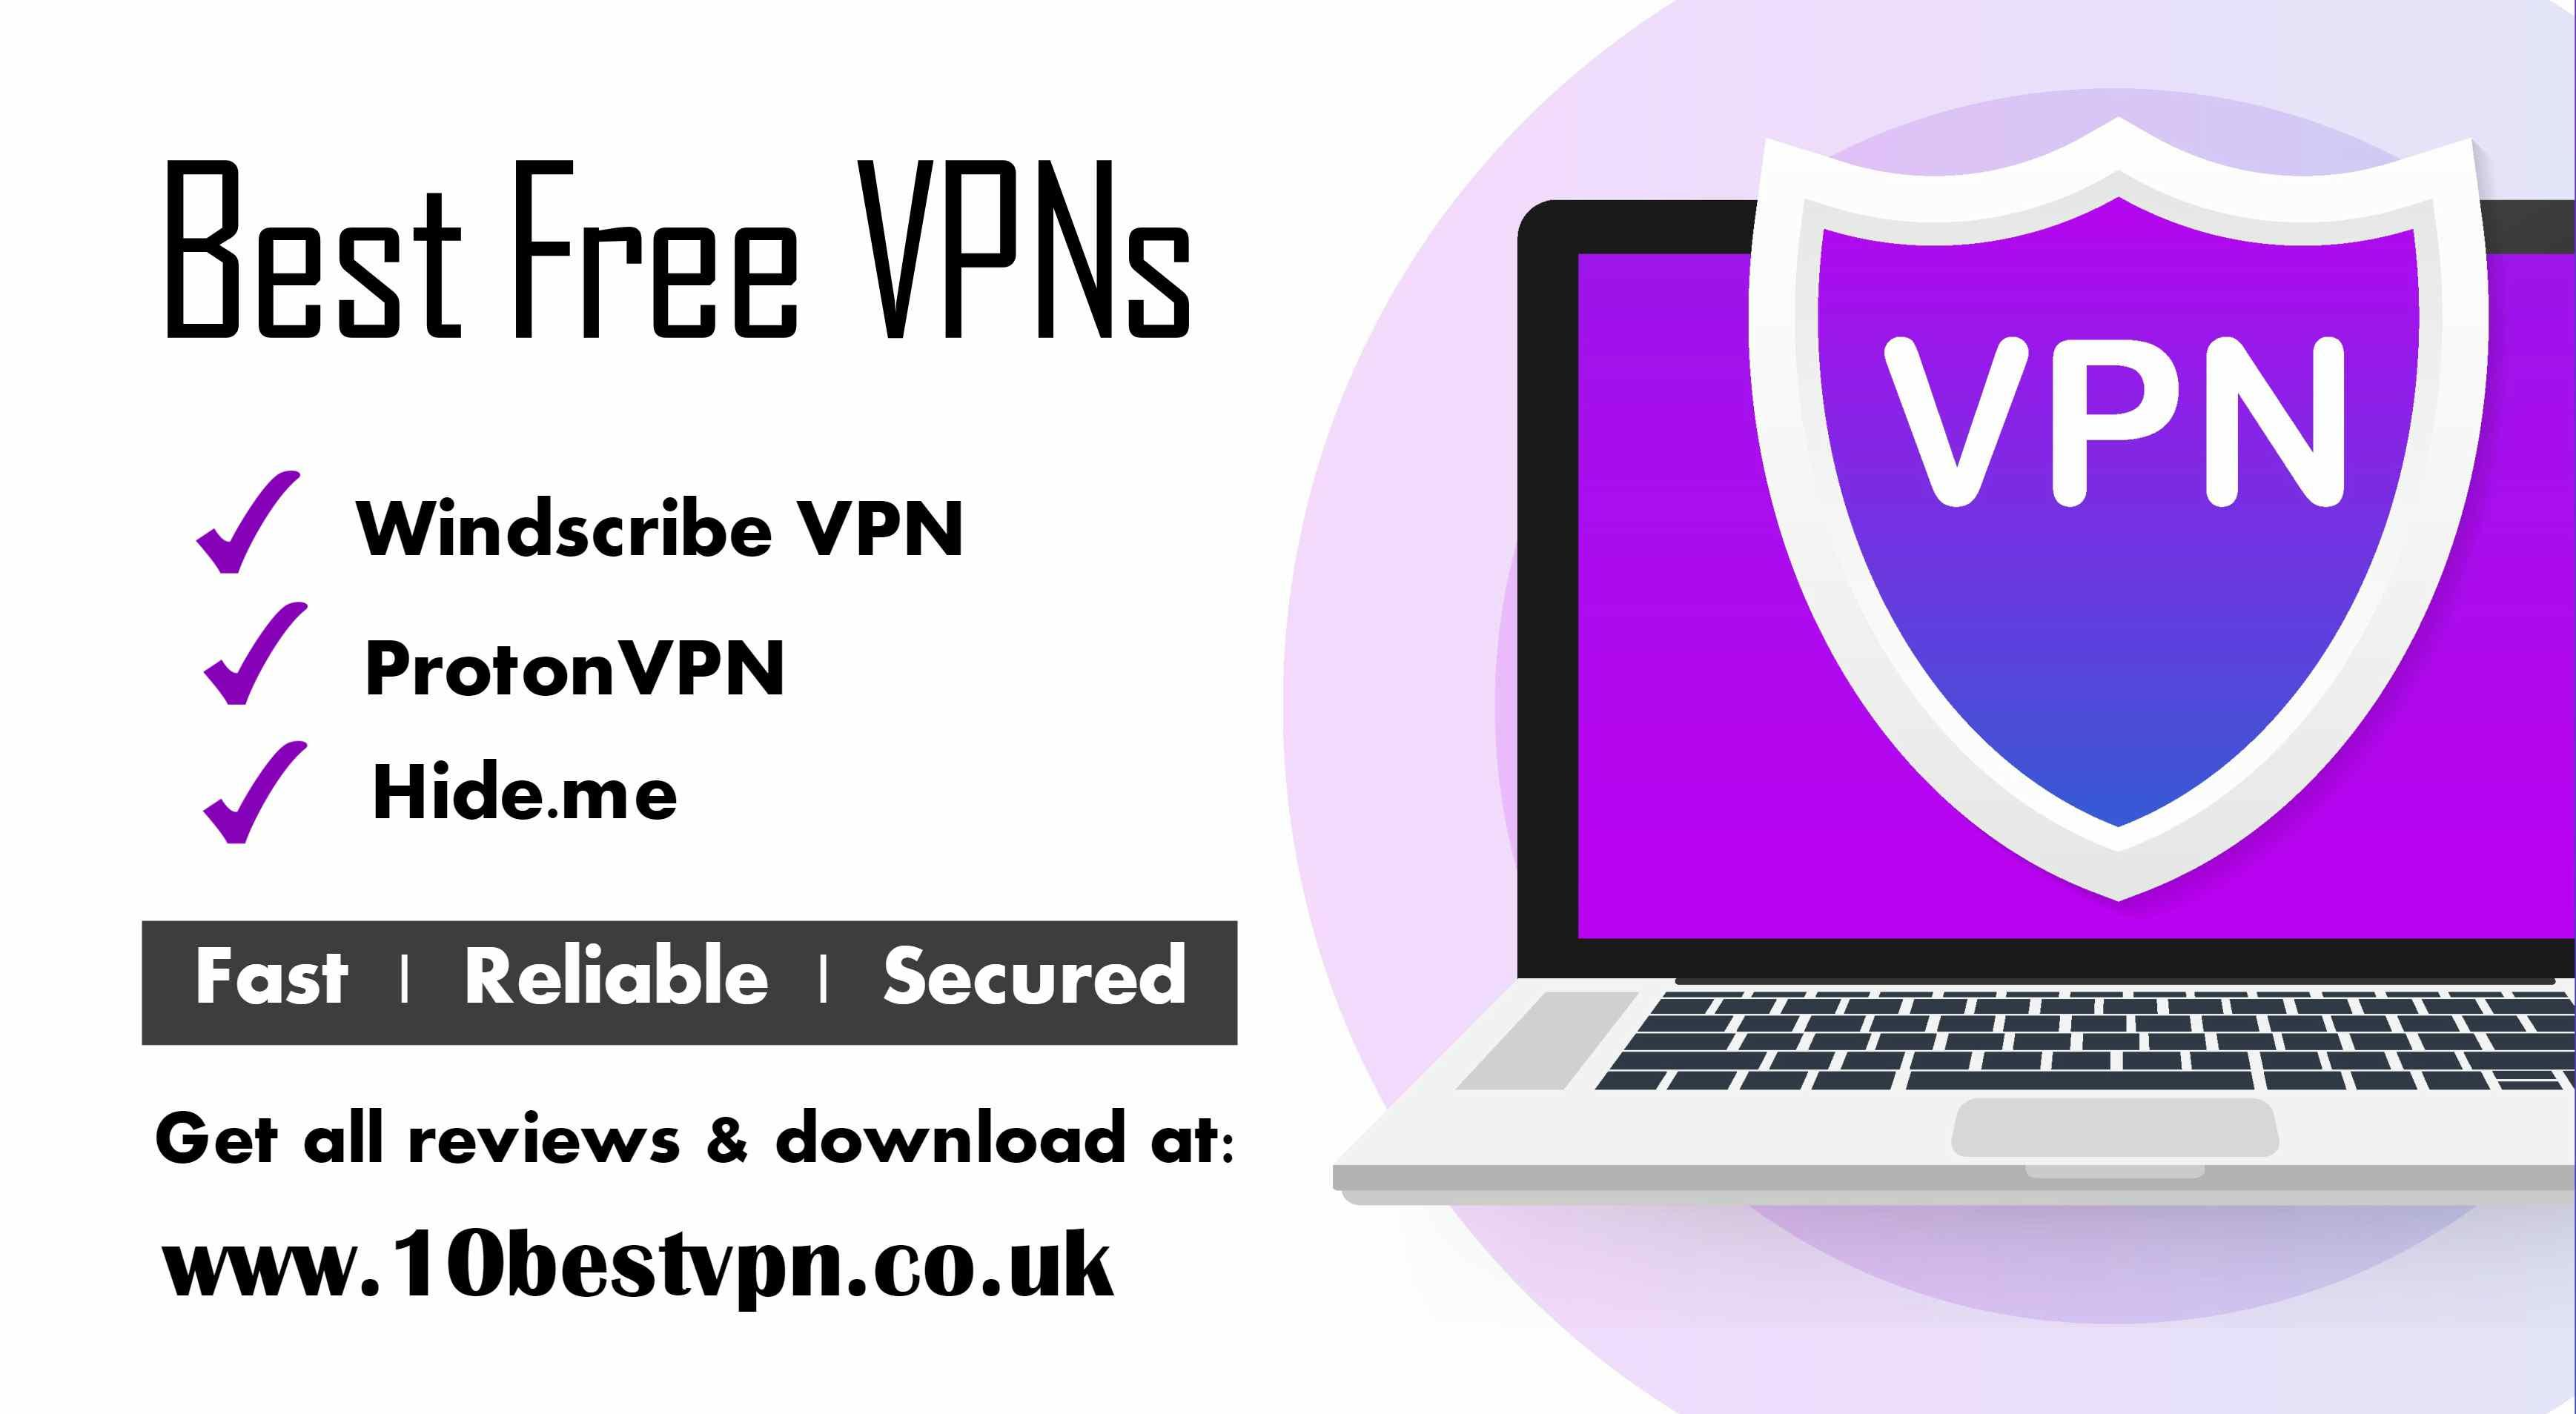 Image - Looking for #BestFreeVPNs, 10BestVPN have a list of Best #FreeVPNservices that are reliable, safe and secured...